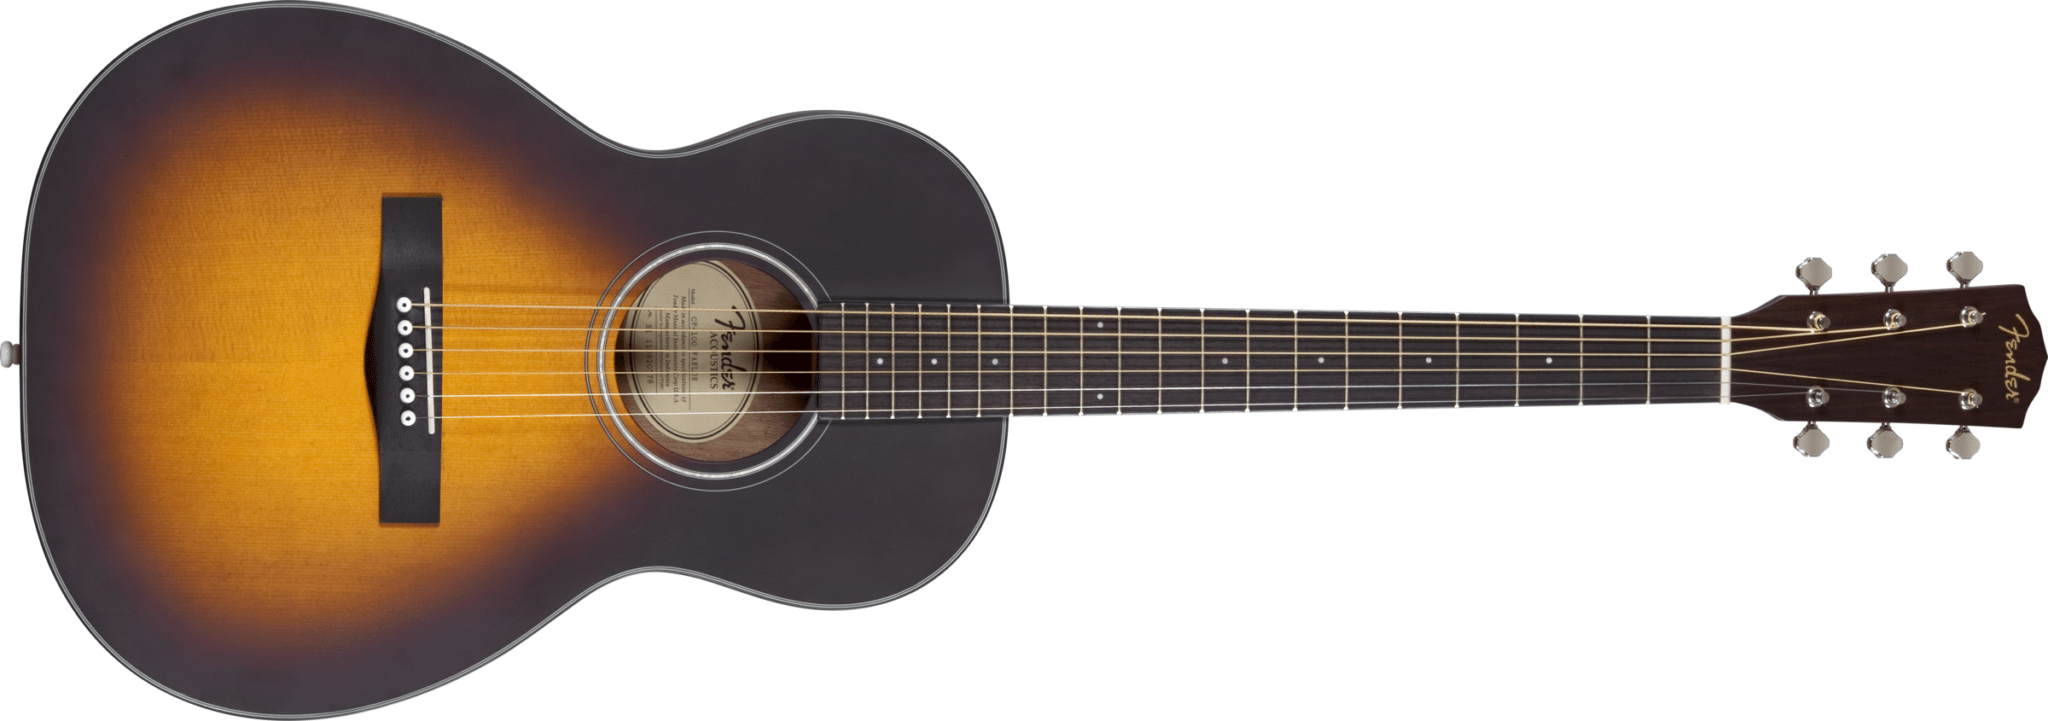 Fender Cp 100 Parlor Acoustic Guitar Styles Music